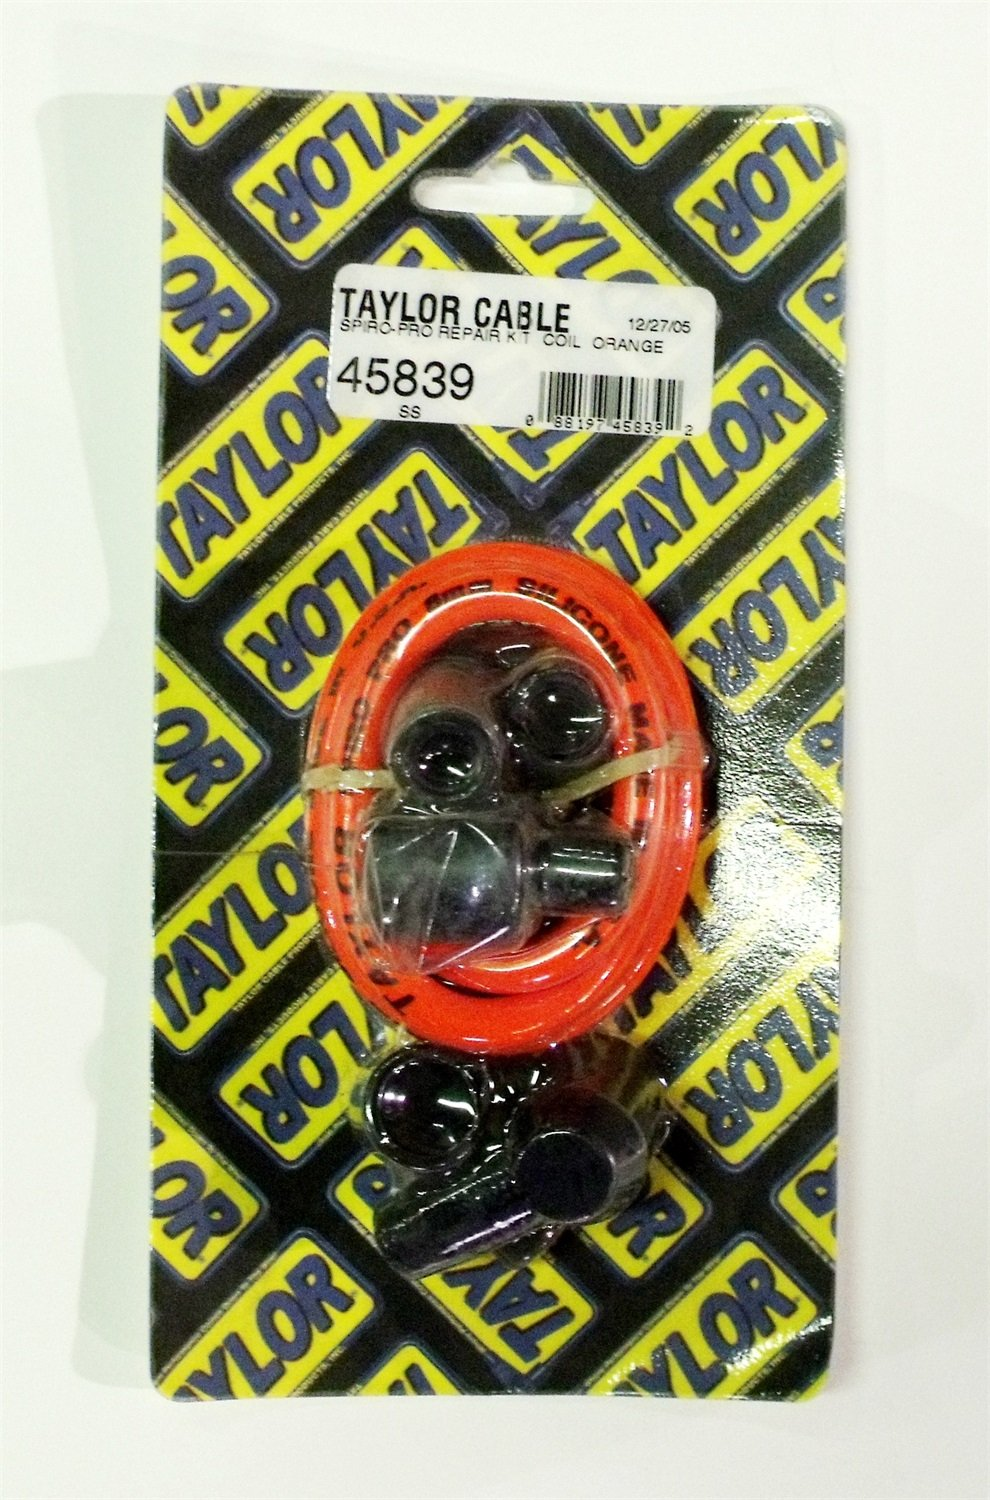 Taylor Cable 45839 8mm Spiro Pro Coil Wire Repair Kit